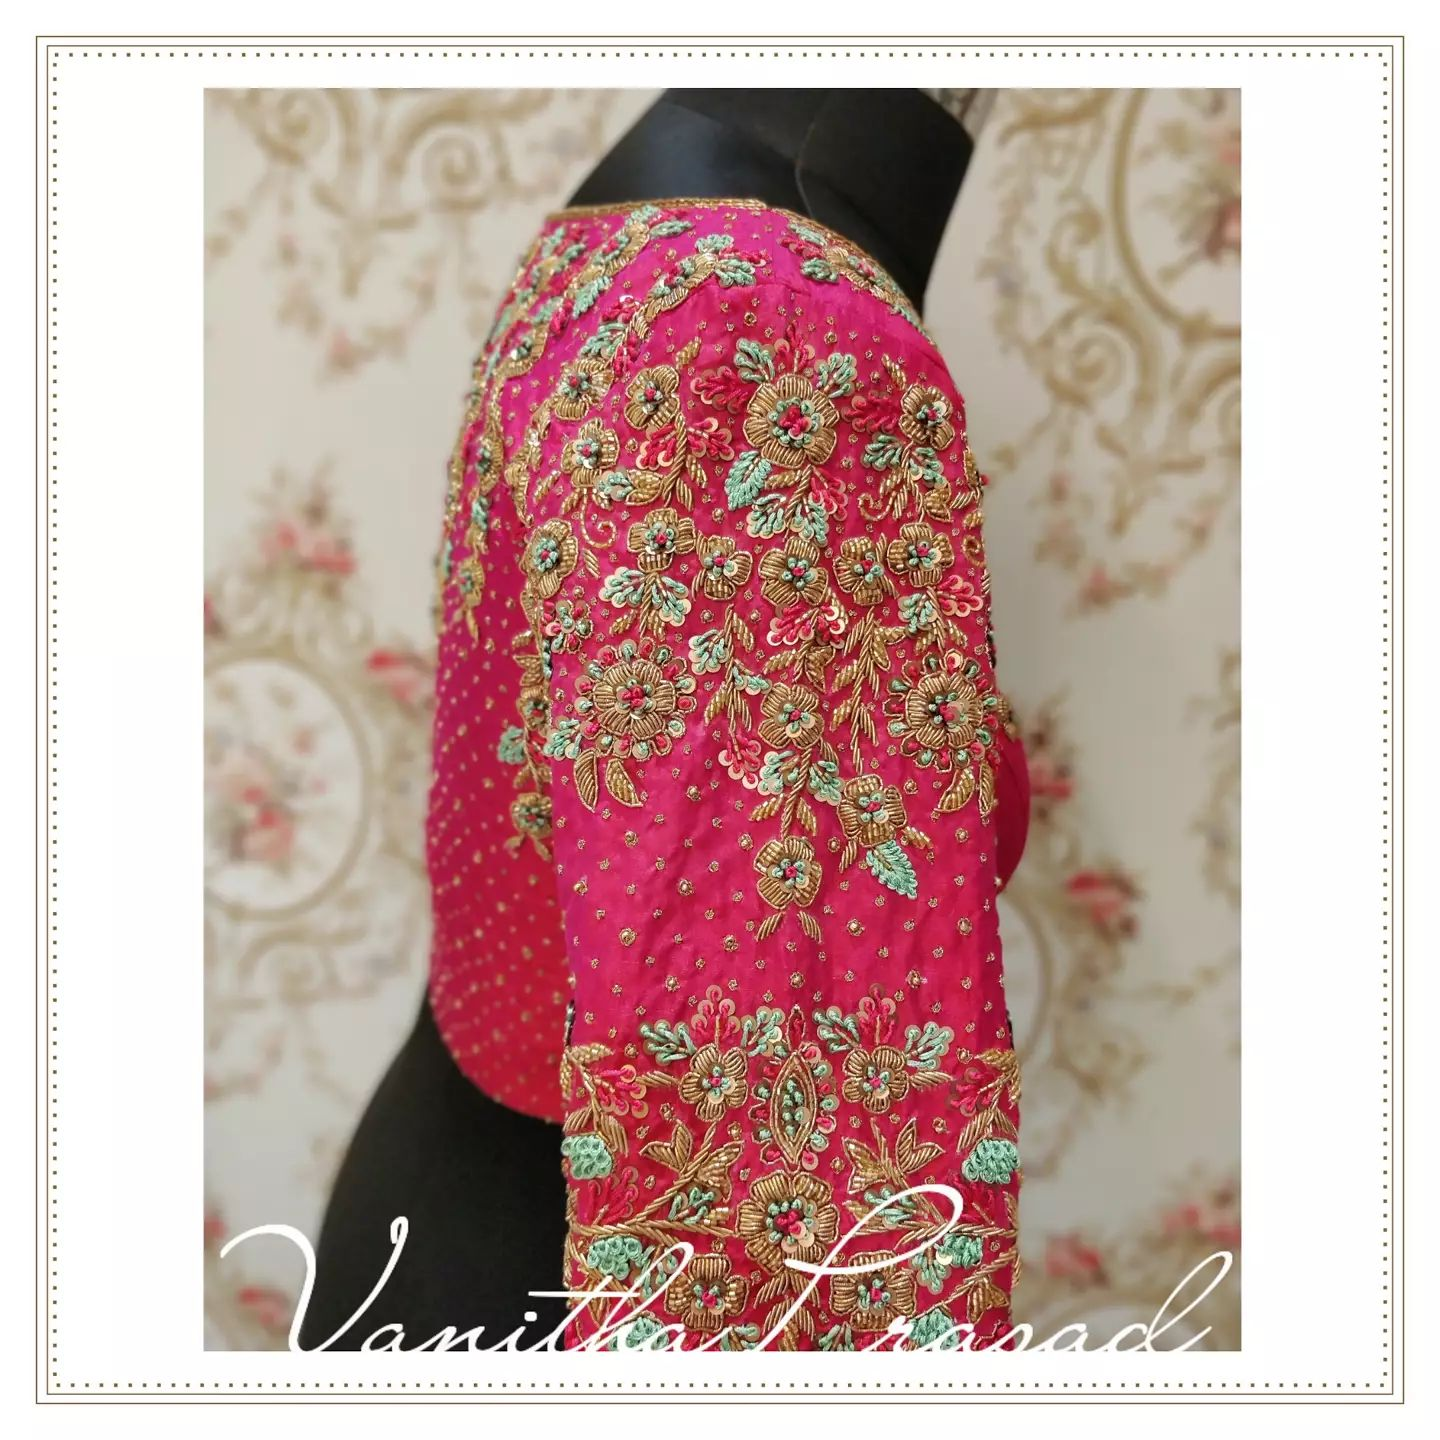 High neck bridal blouses always seem to steal the show! Stunning bridal blouse with floral gold thread maggam work. 2021-10-07